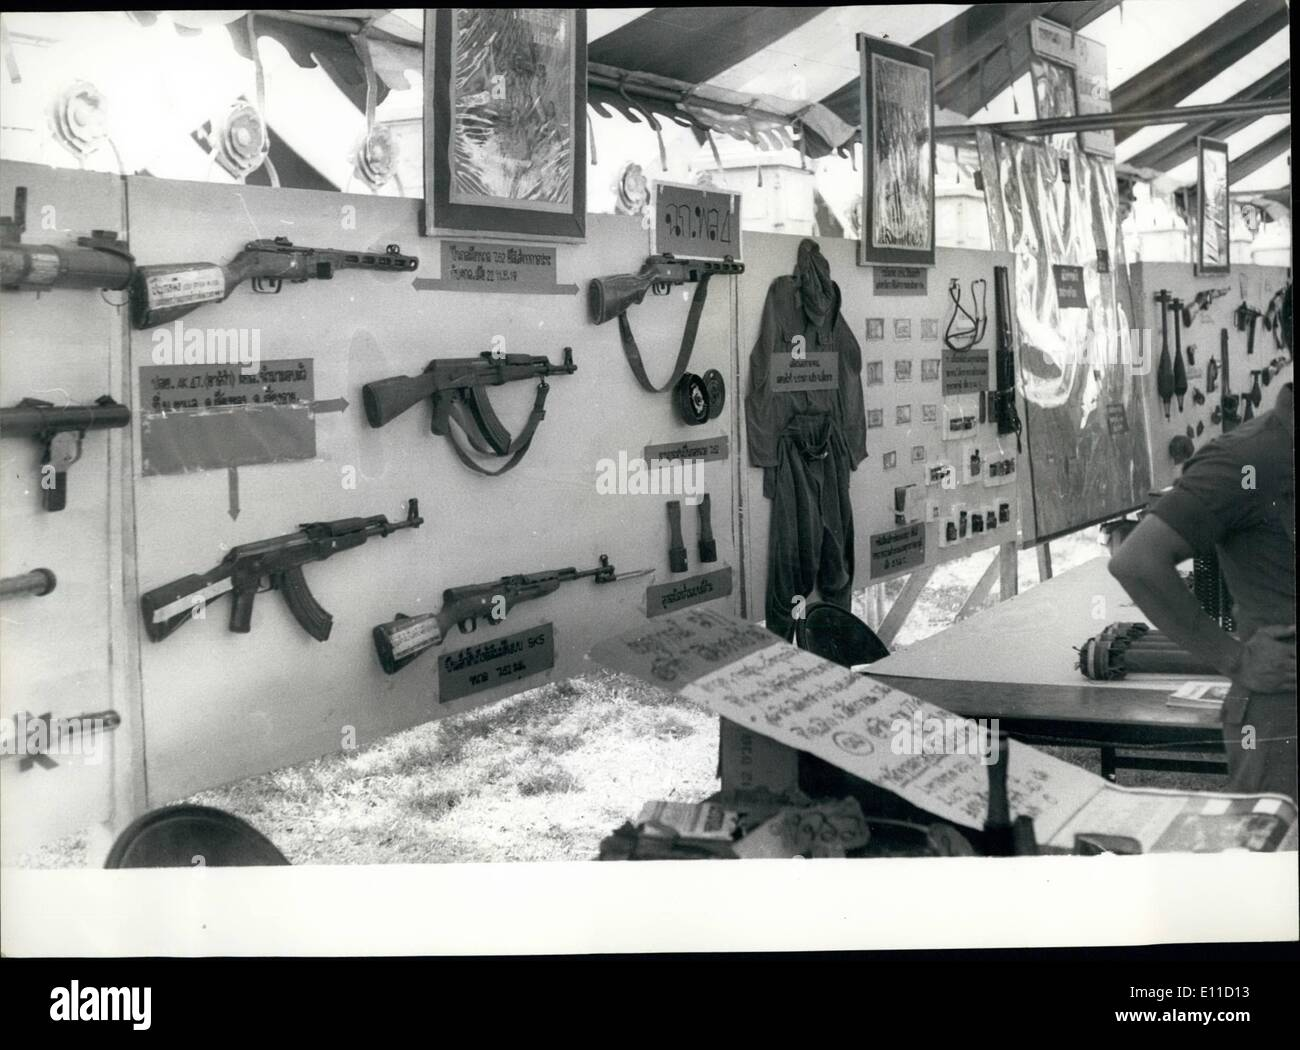 Apr. 04, 1977 - EXHIBITION OF COMMUNIST INSURGENT'S WEAPONS ON SHOW IN BANGKOK. Since the time the Thai National Stock Photo